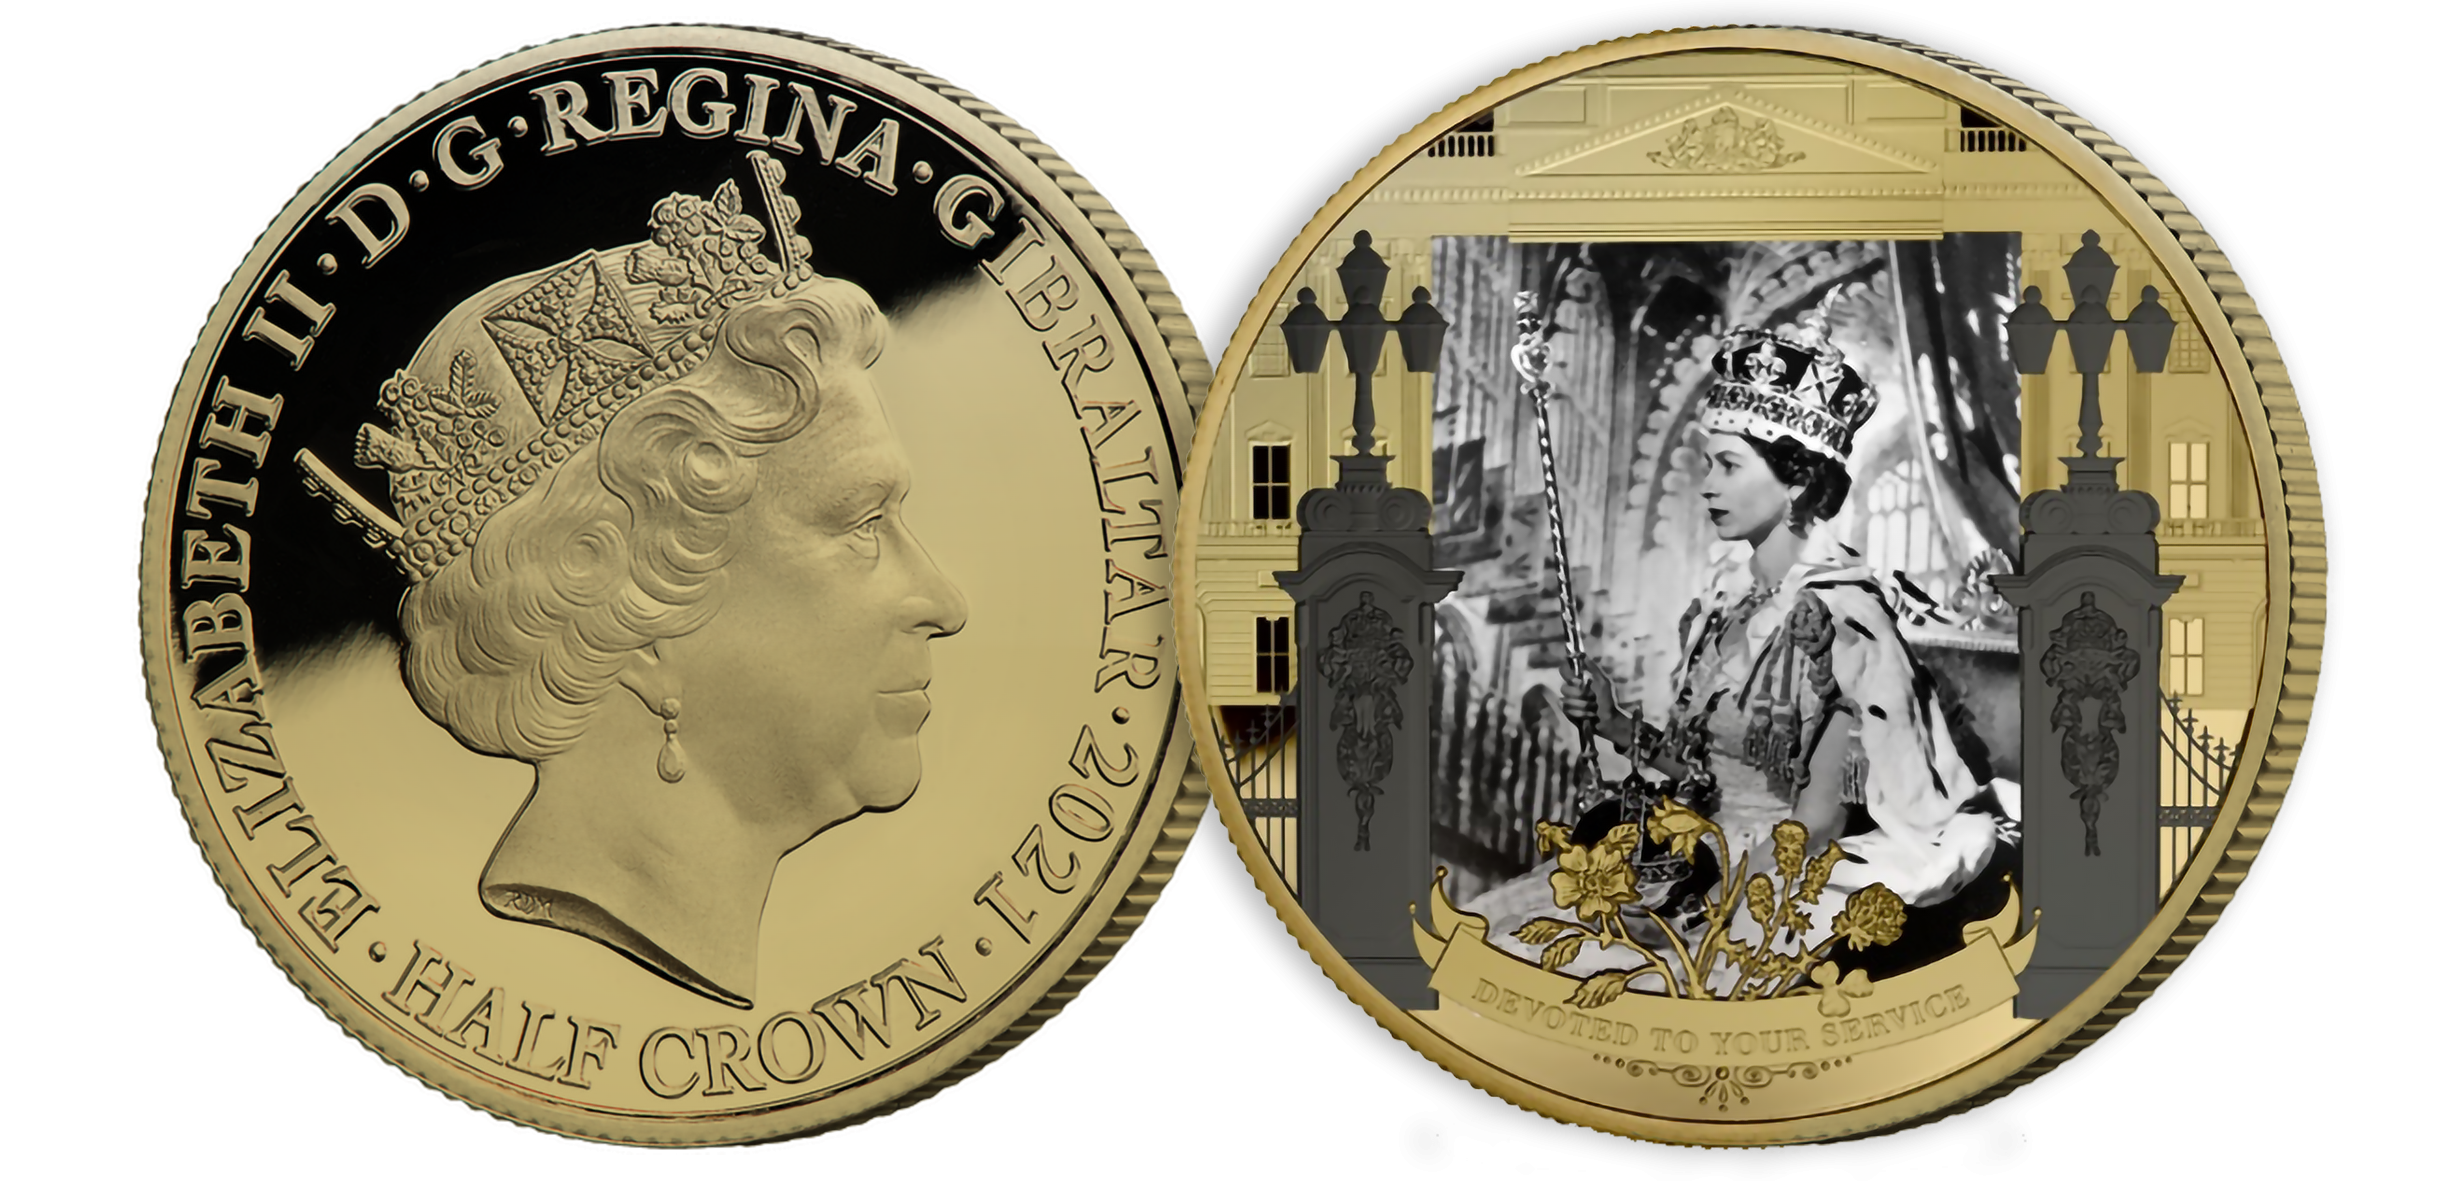 The photograph featured on the coin was taken on June 2nd, 1953, marking the formal  beginning of what would become the longest reign in British history. Coin layered in fairmined  gold.